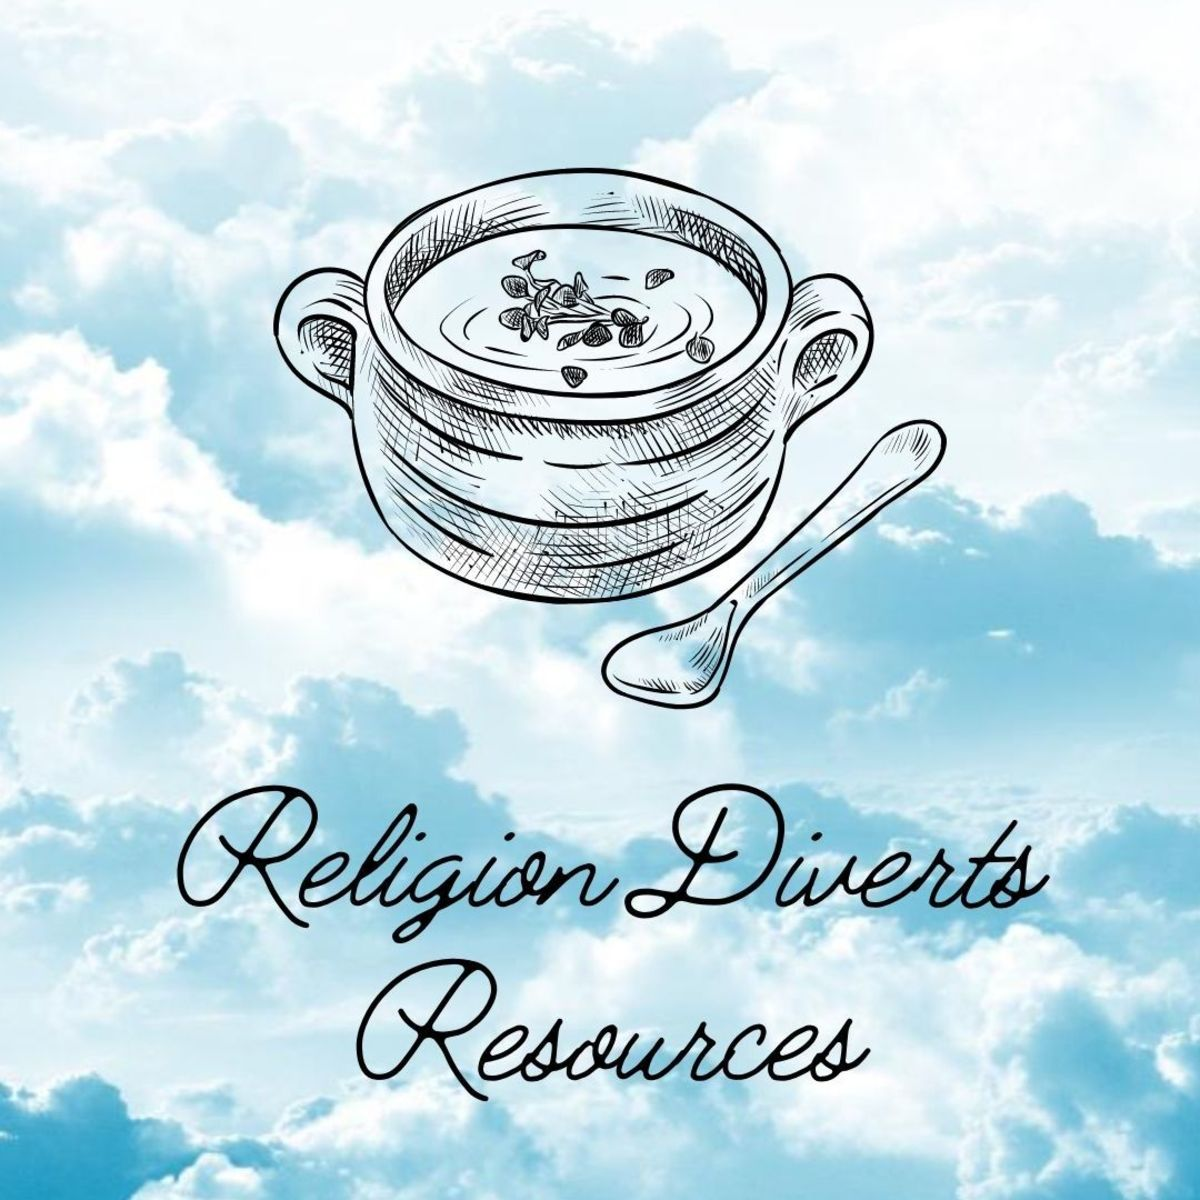 Religion diverts resources